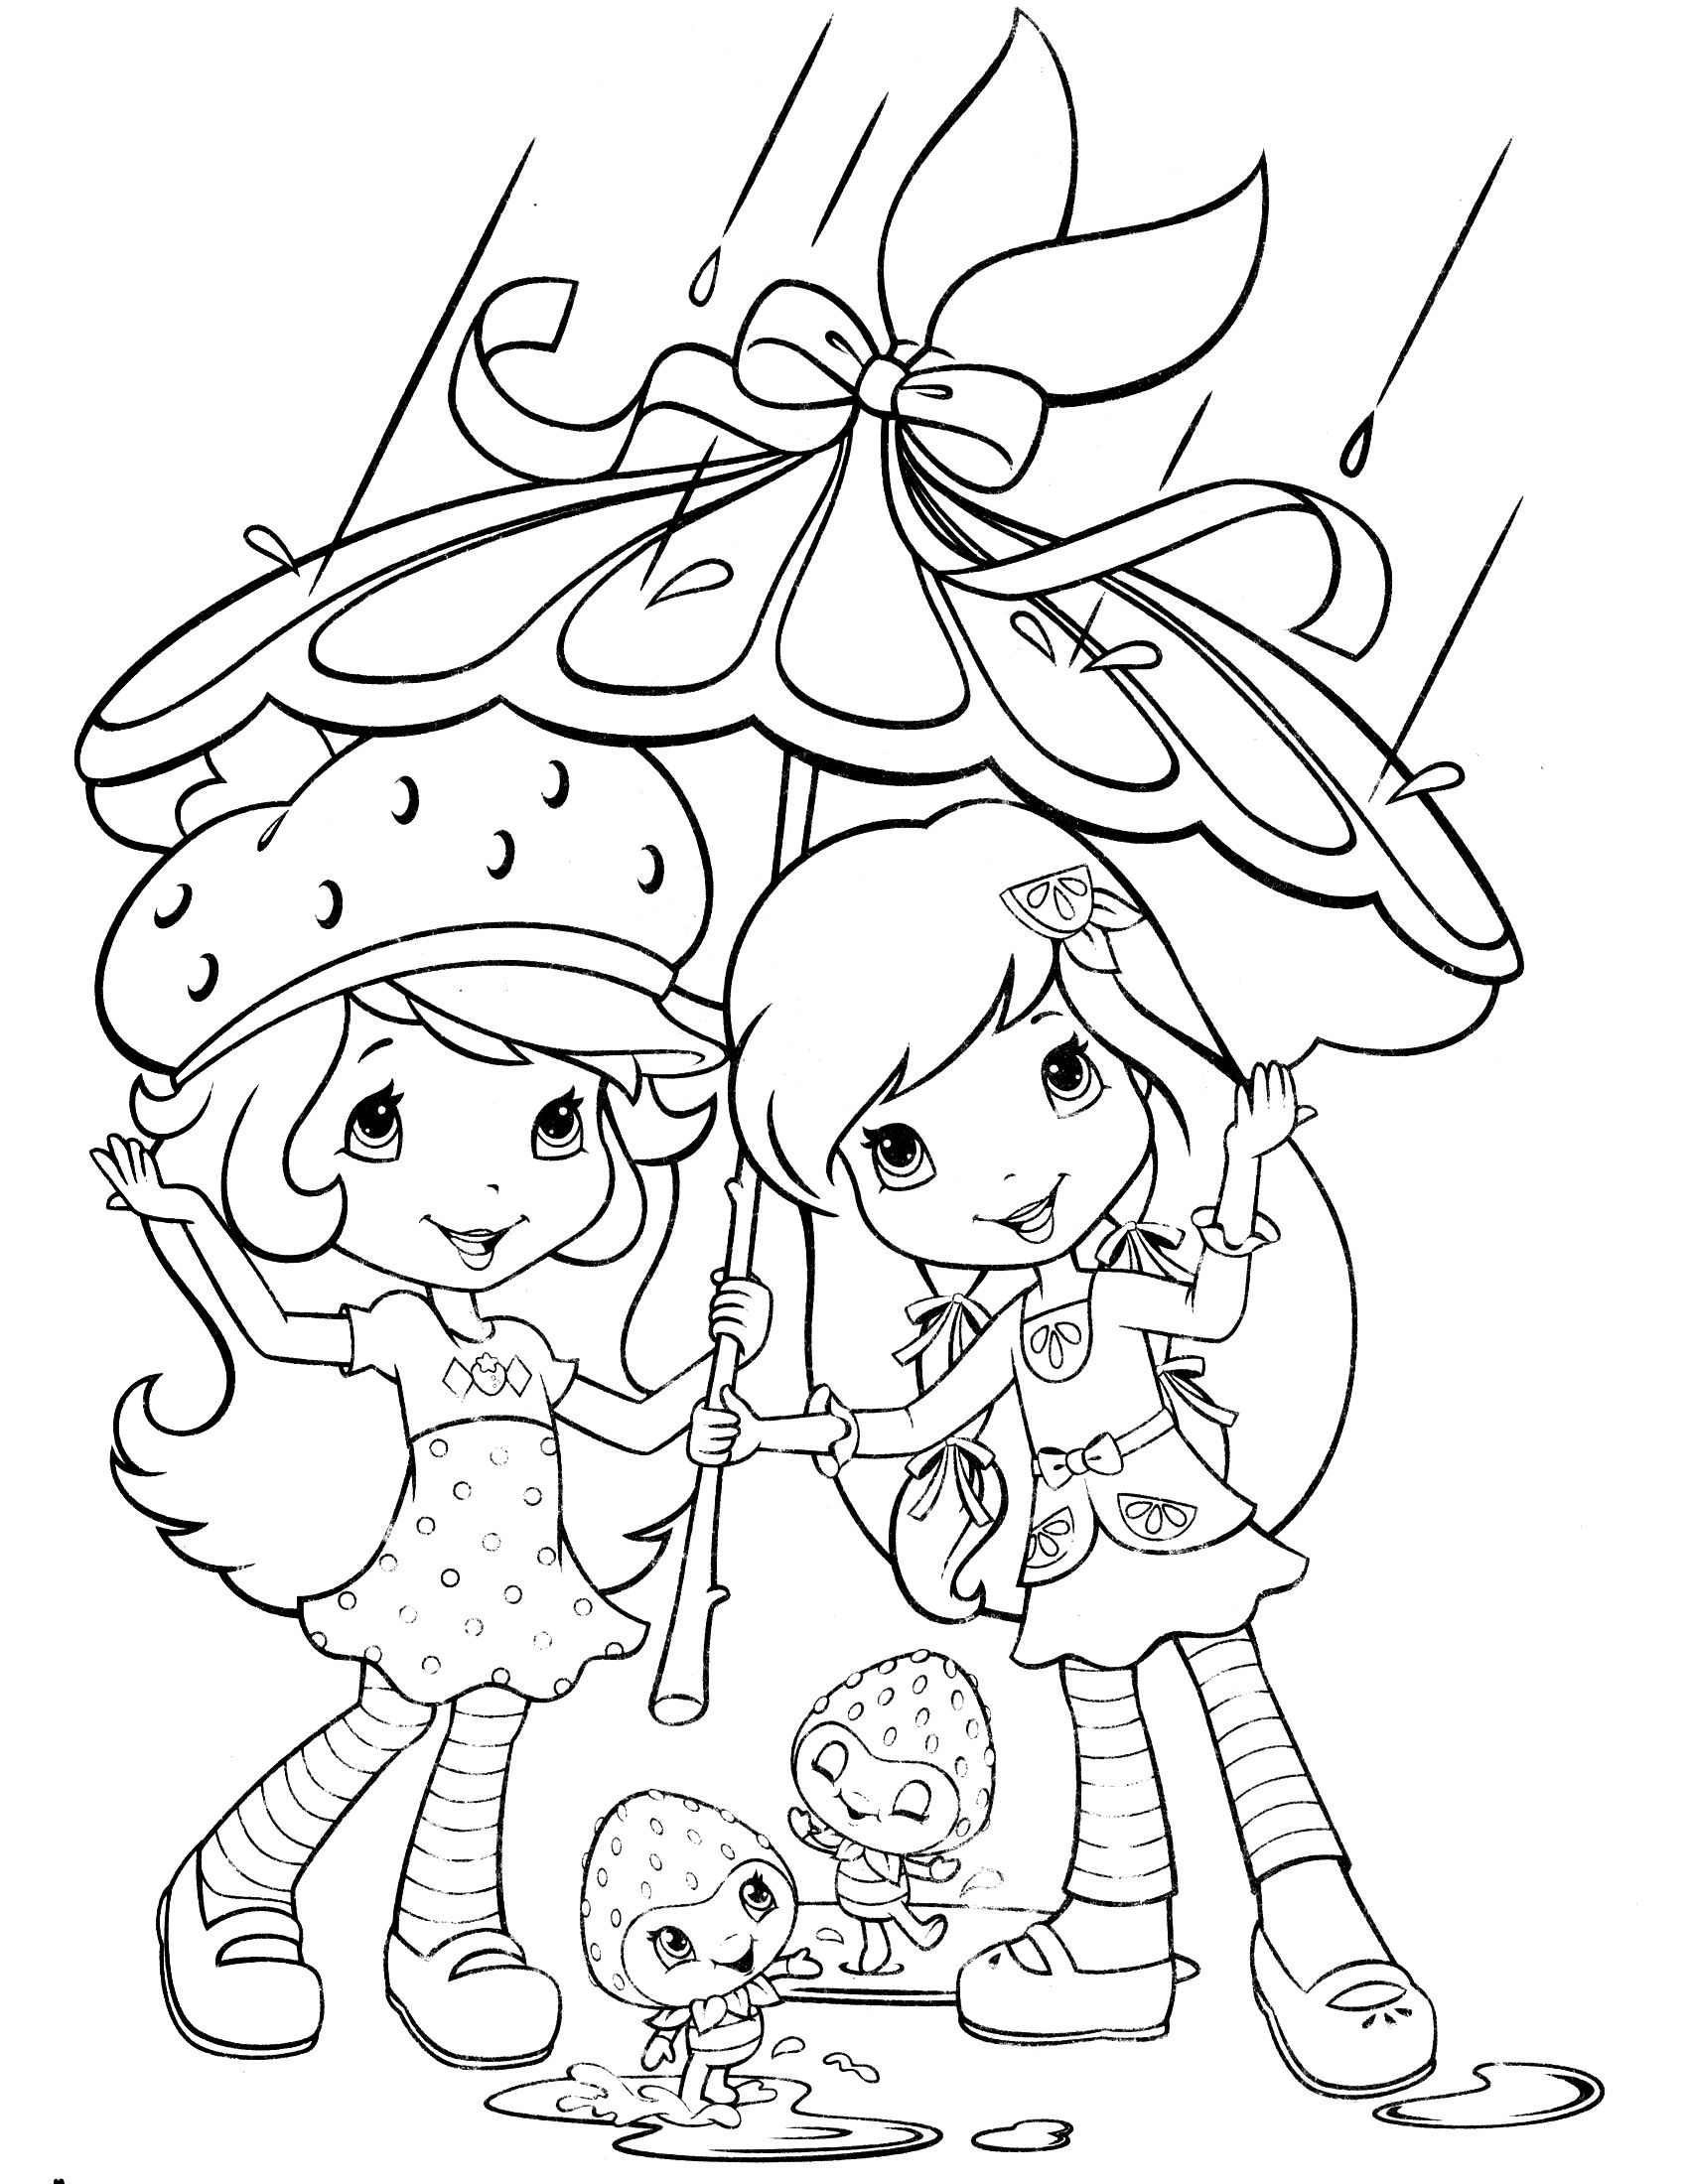 strawberry shortcake coloring page | Para colorear | Pinterest ...